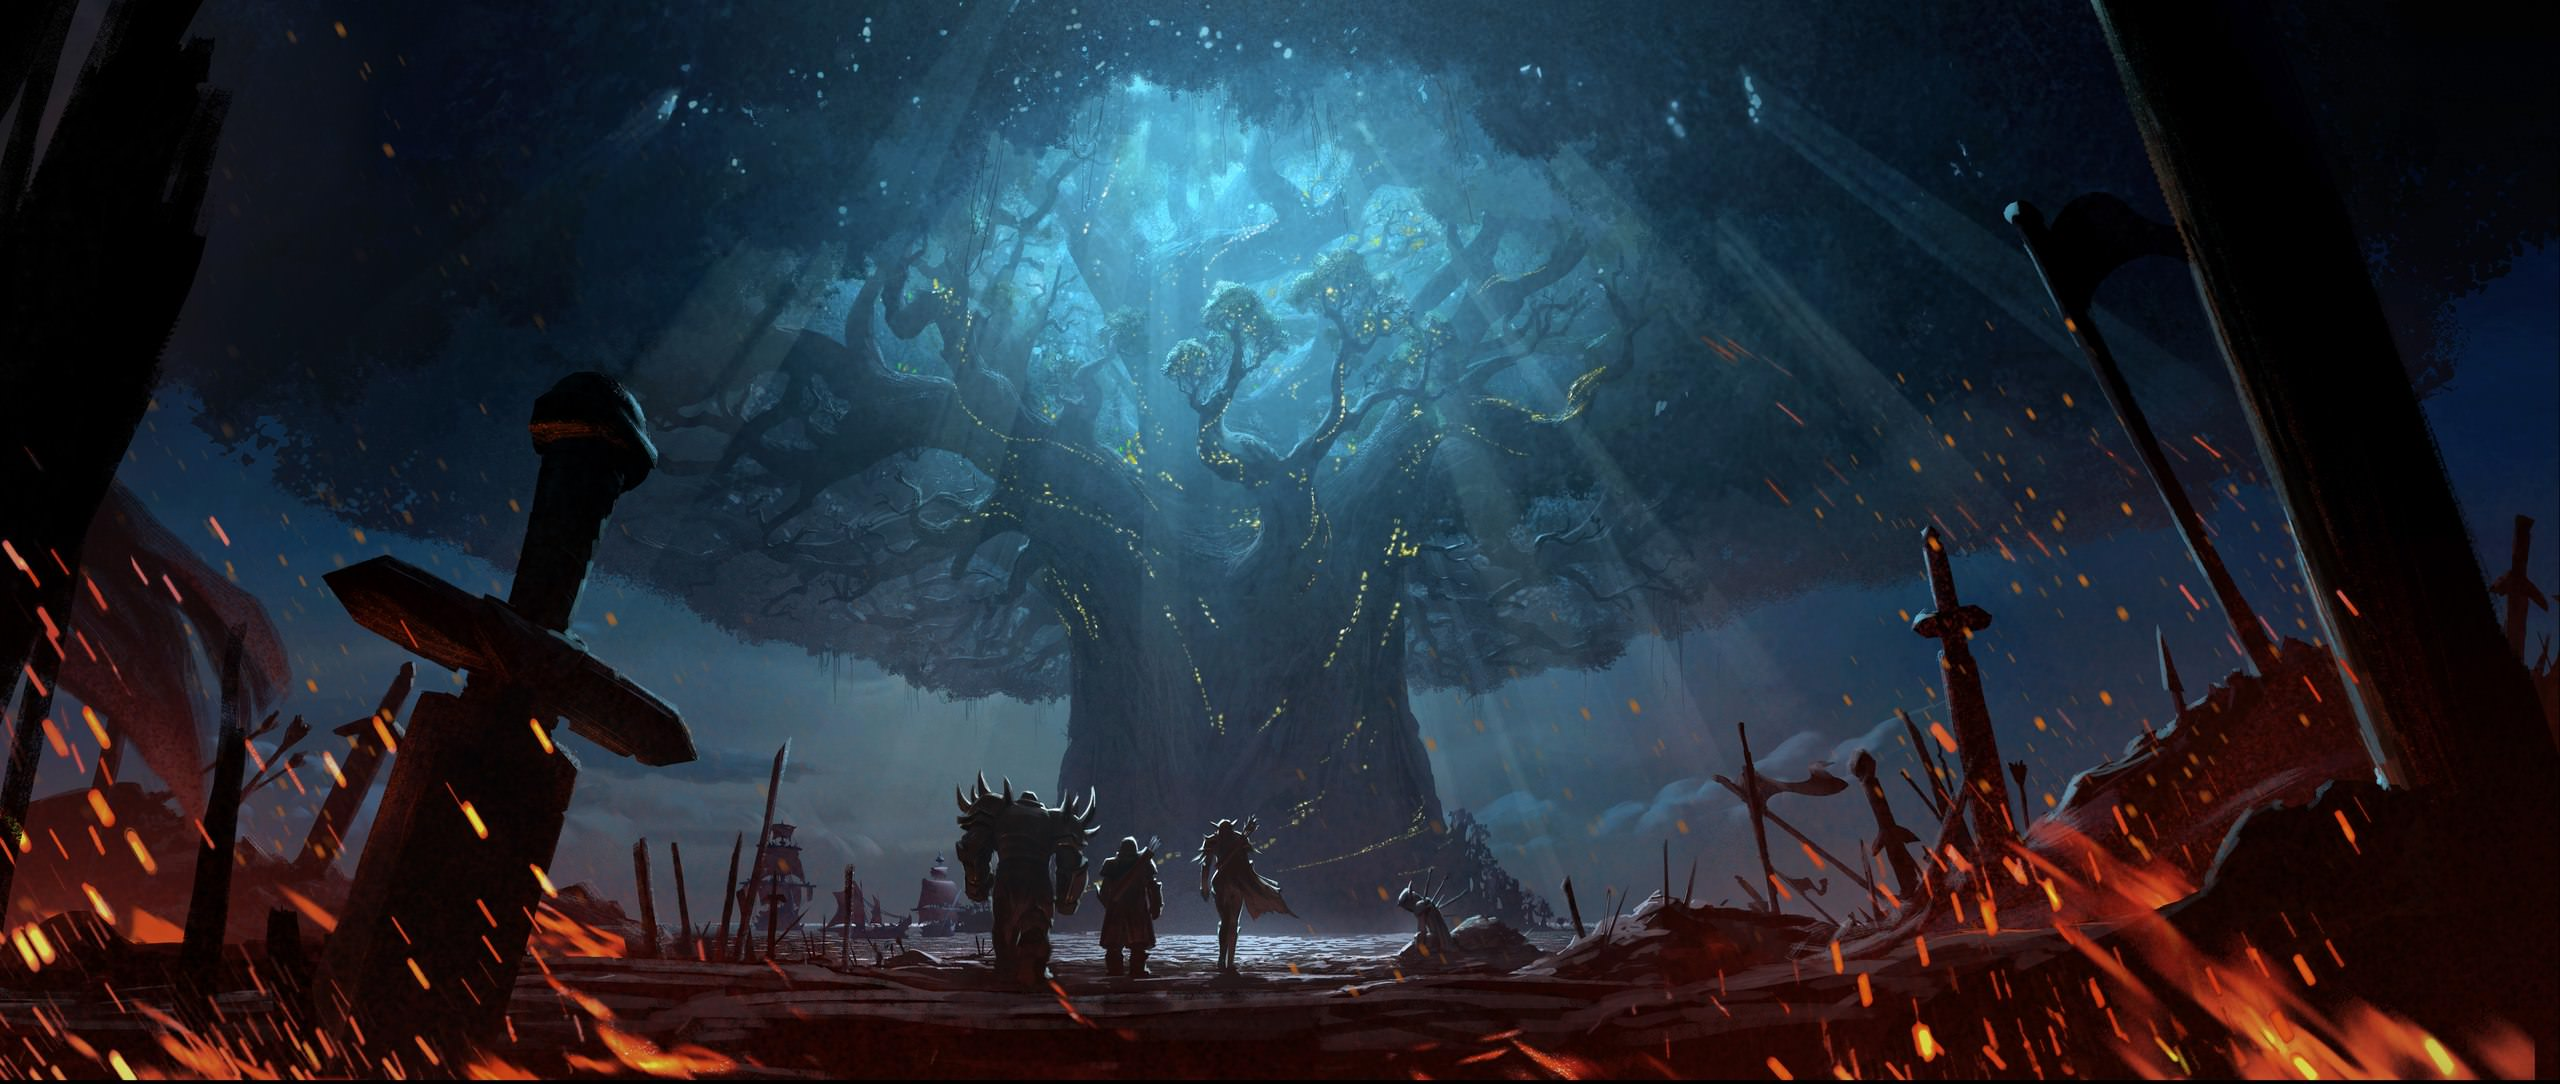 WoW Battle for Azeroth Burning Teldrassil Before Artwork